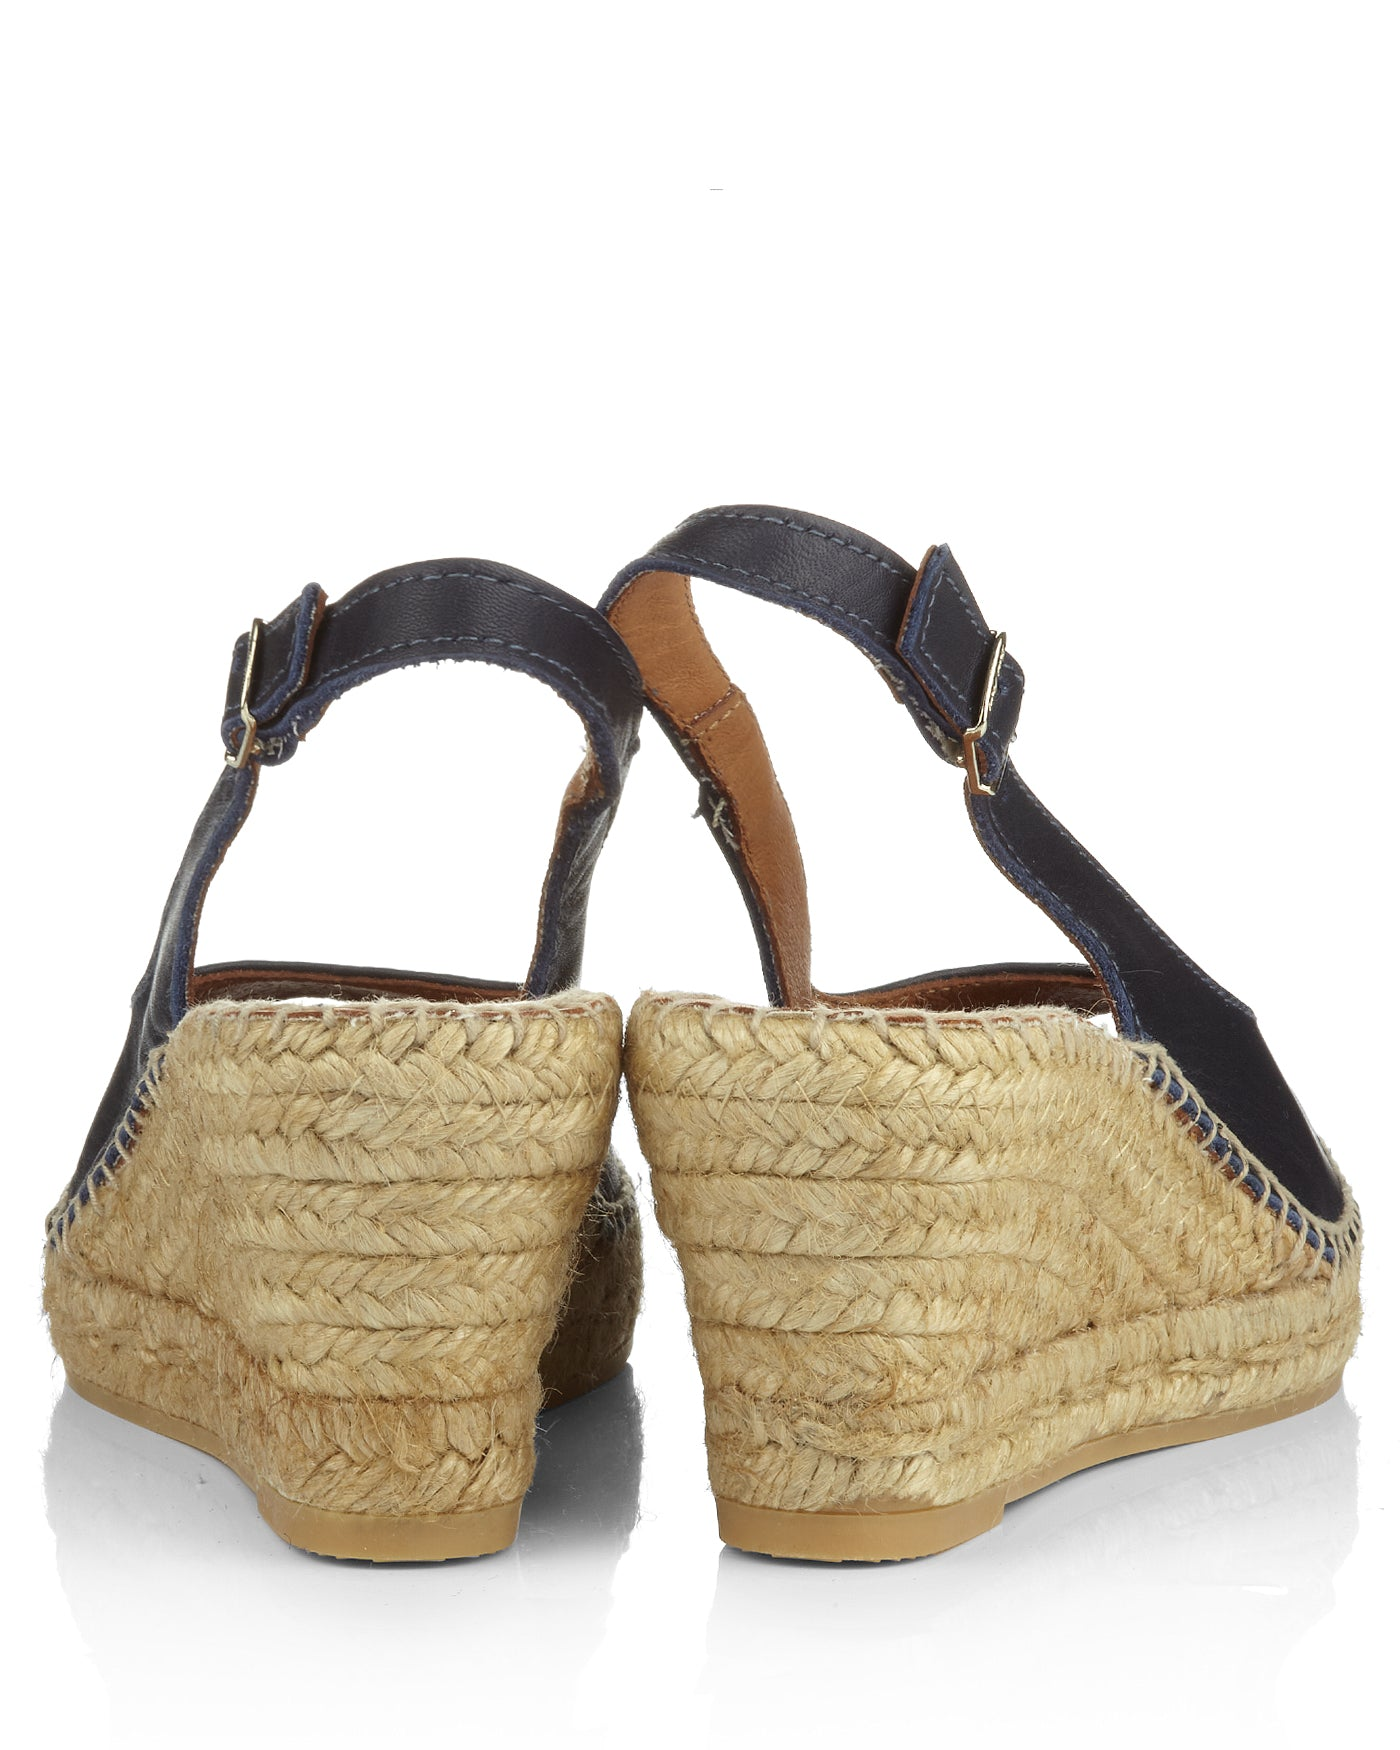 Croacia Navy Blue Leather Peeptoe Espadrille Slingbacks - The Espadrille Hut